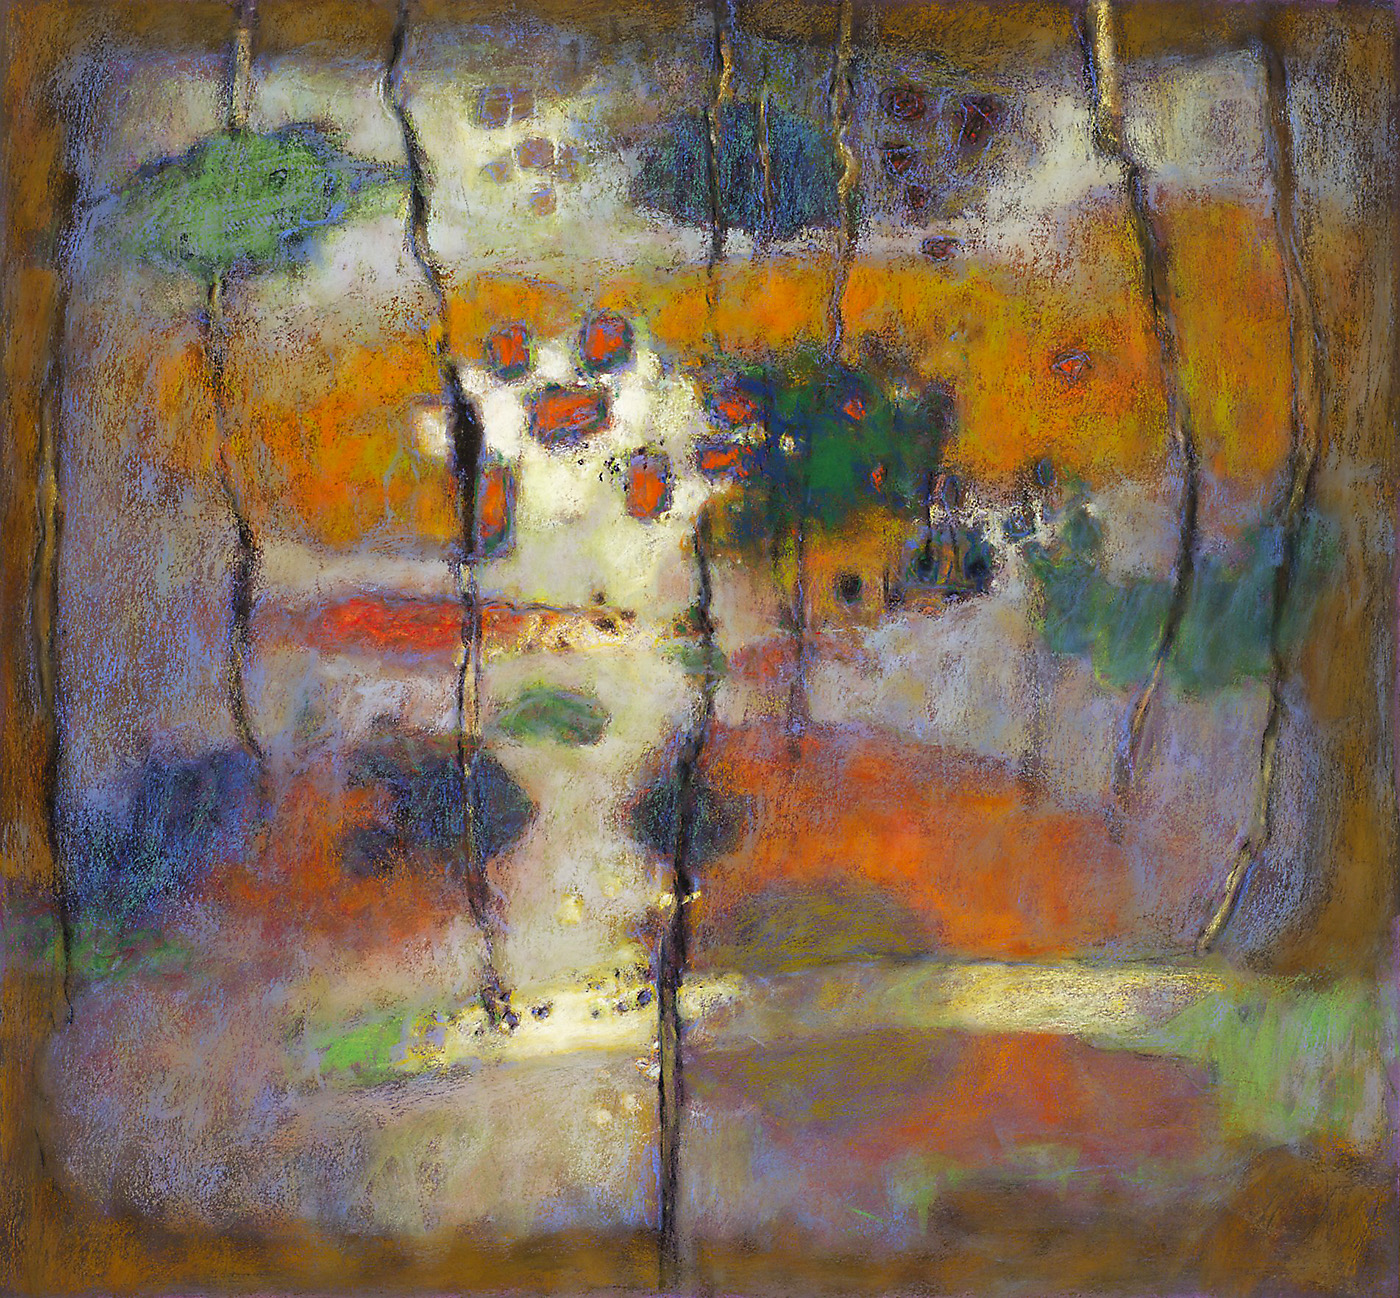 Dimensional Beginning   | pastel on paper | 24 x 26"